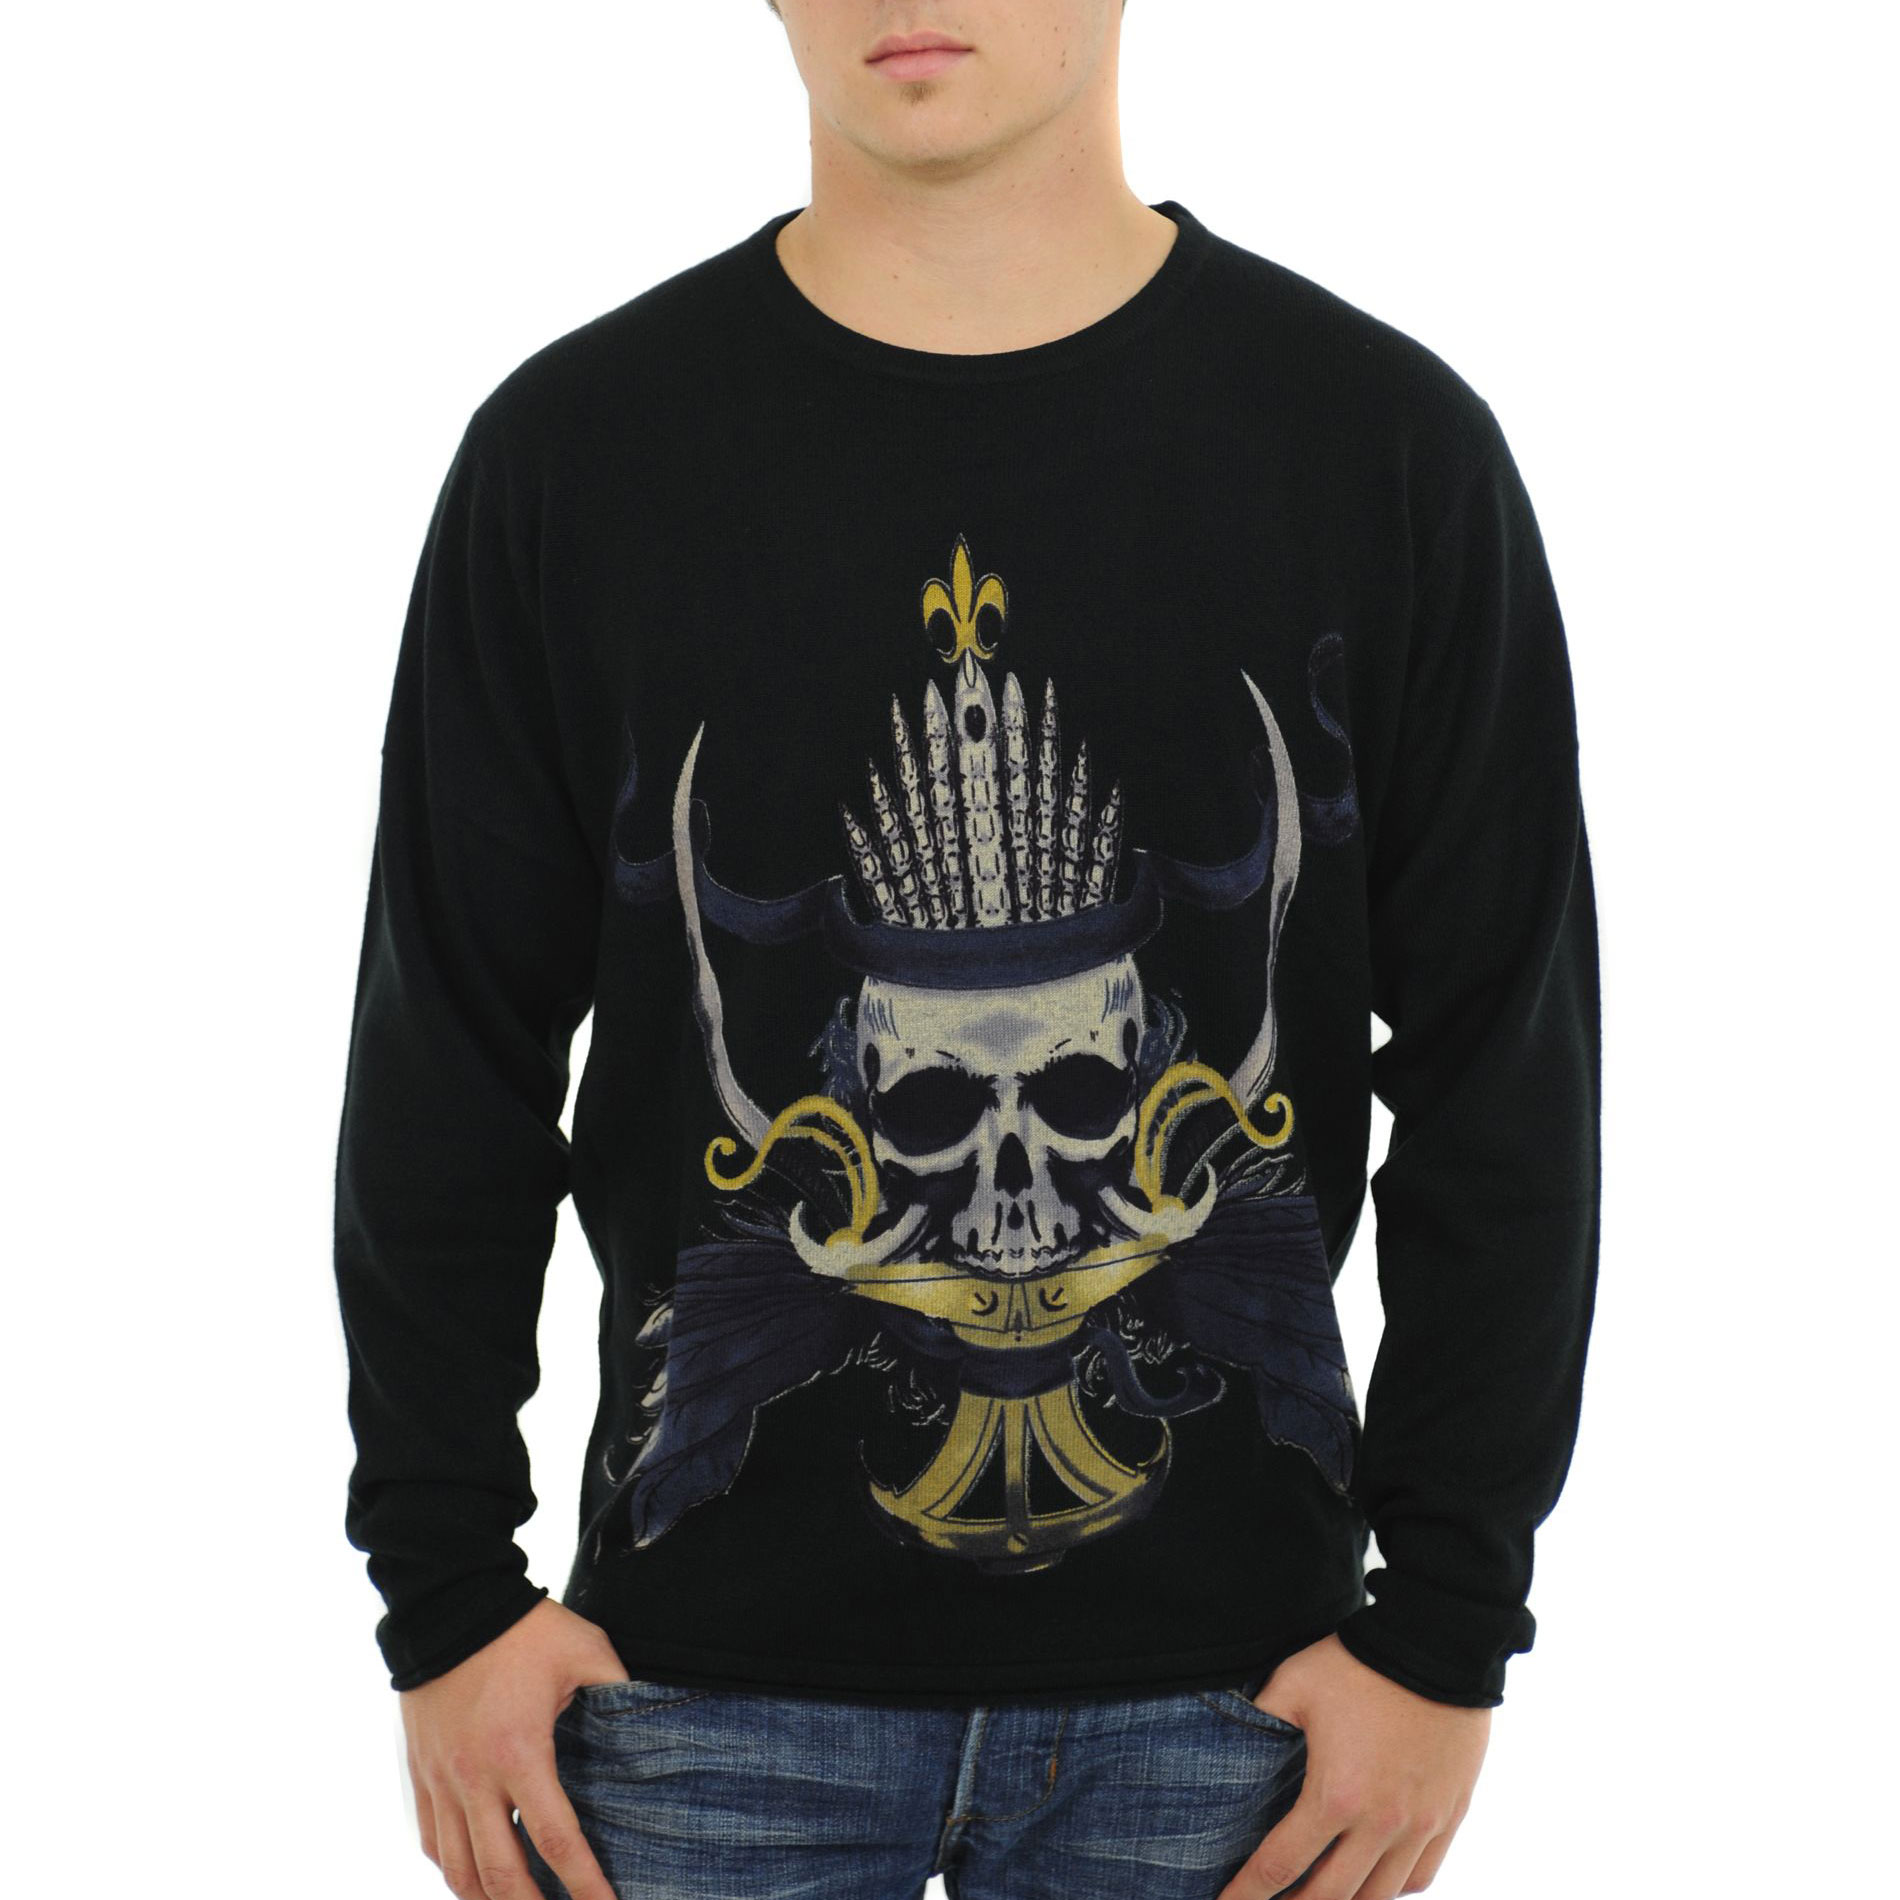 RAW 7 G09H03-CAPTAIN Raw 7 Men's Crewneck Sweater Fleur-de-lis Pirate Captain Design - Black